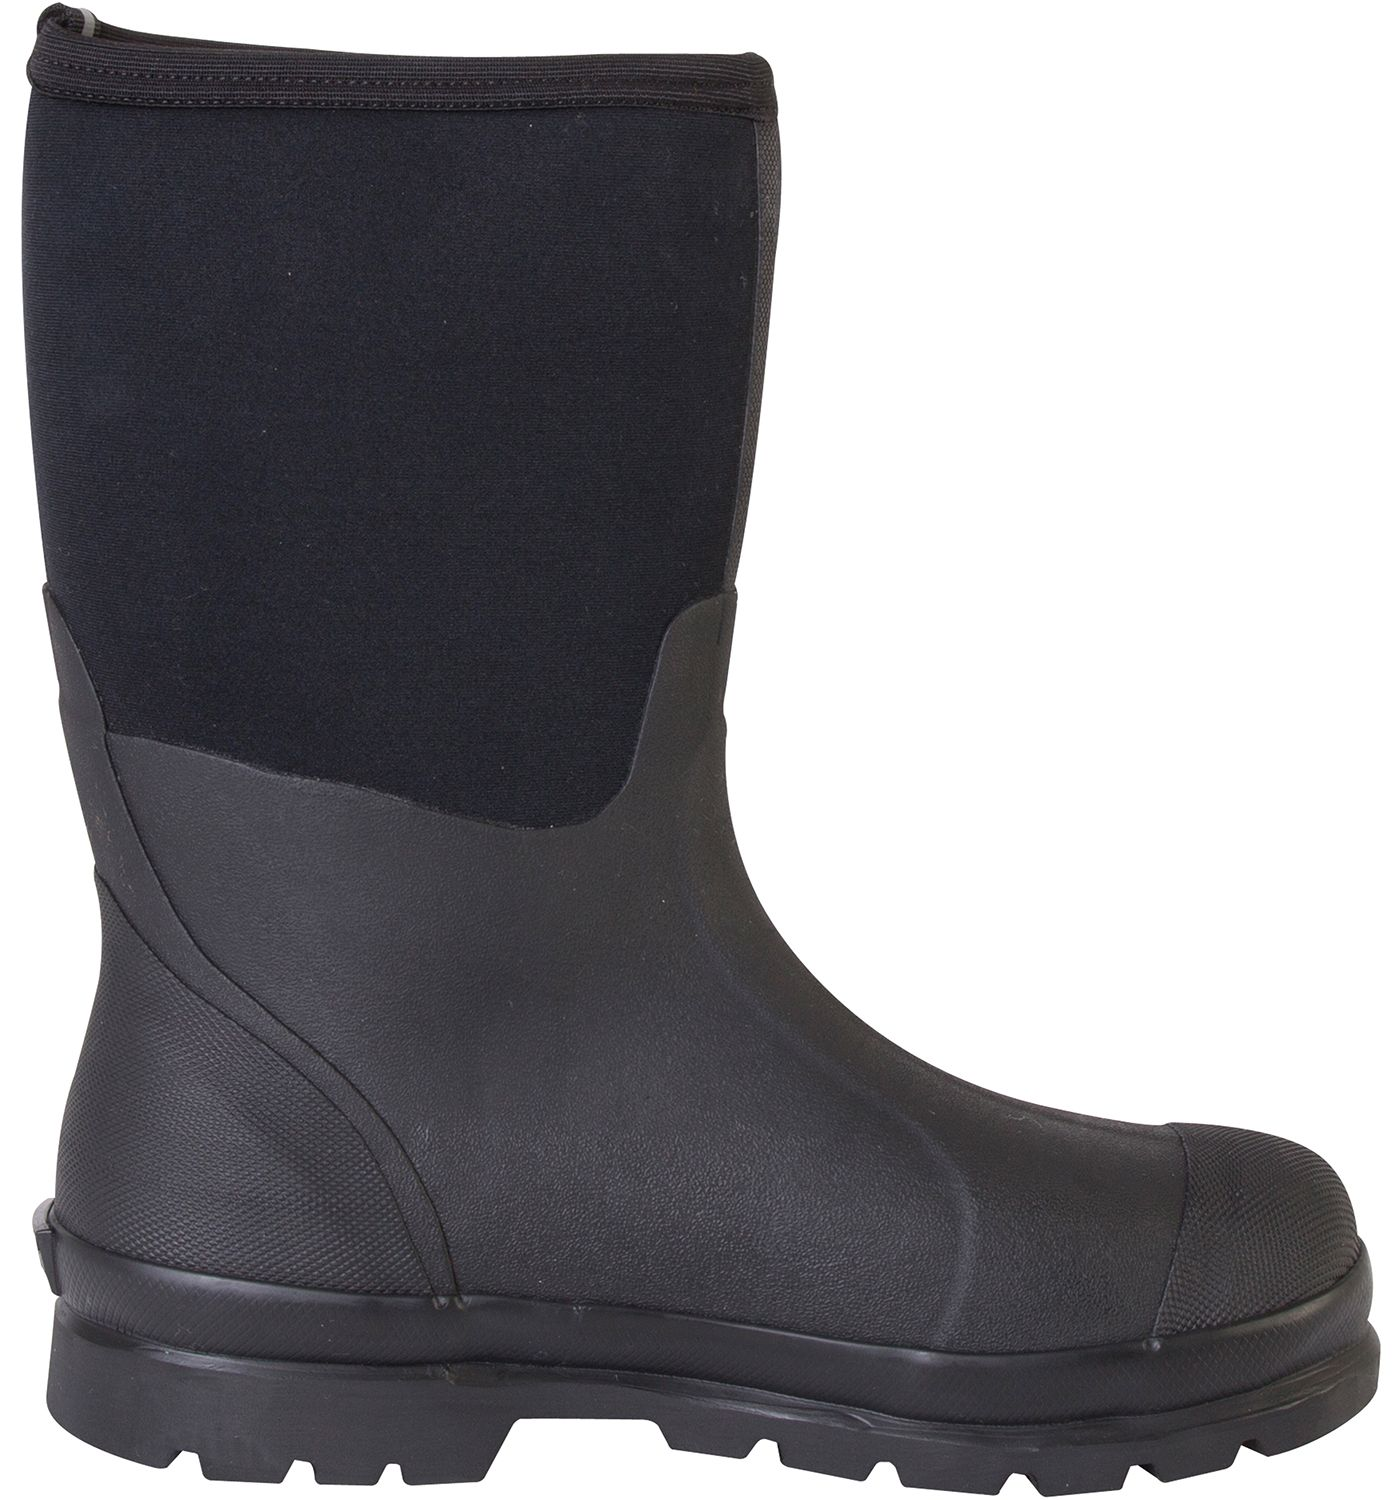 Muck Boots Men's Chore Mid Waterproof Work Boots